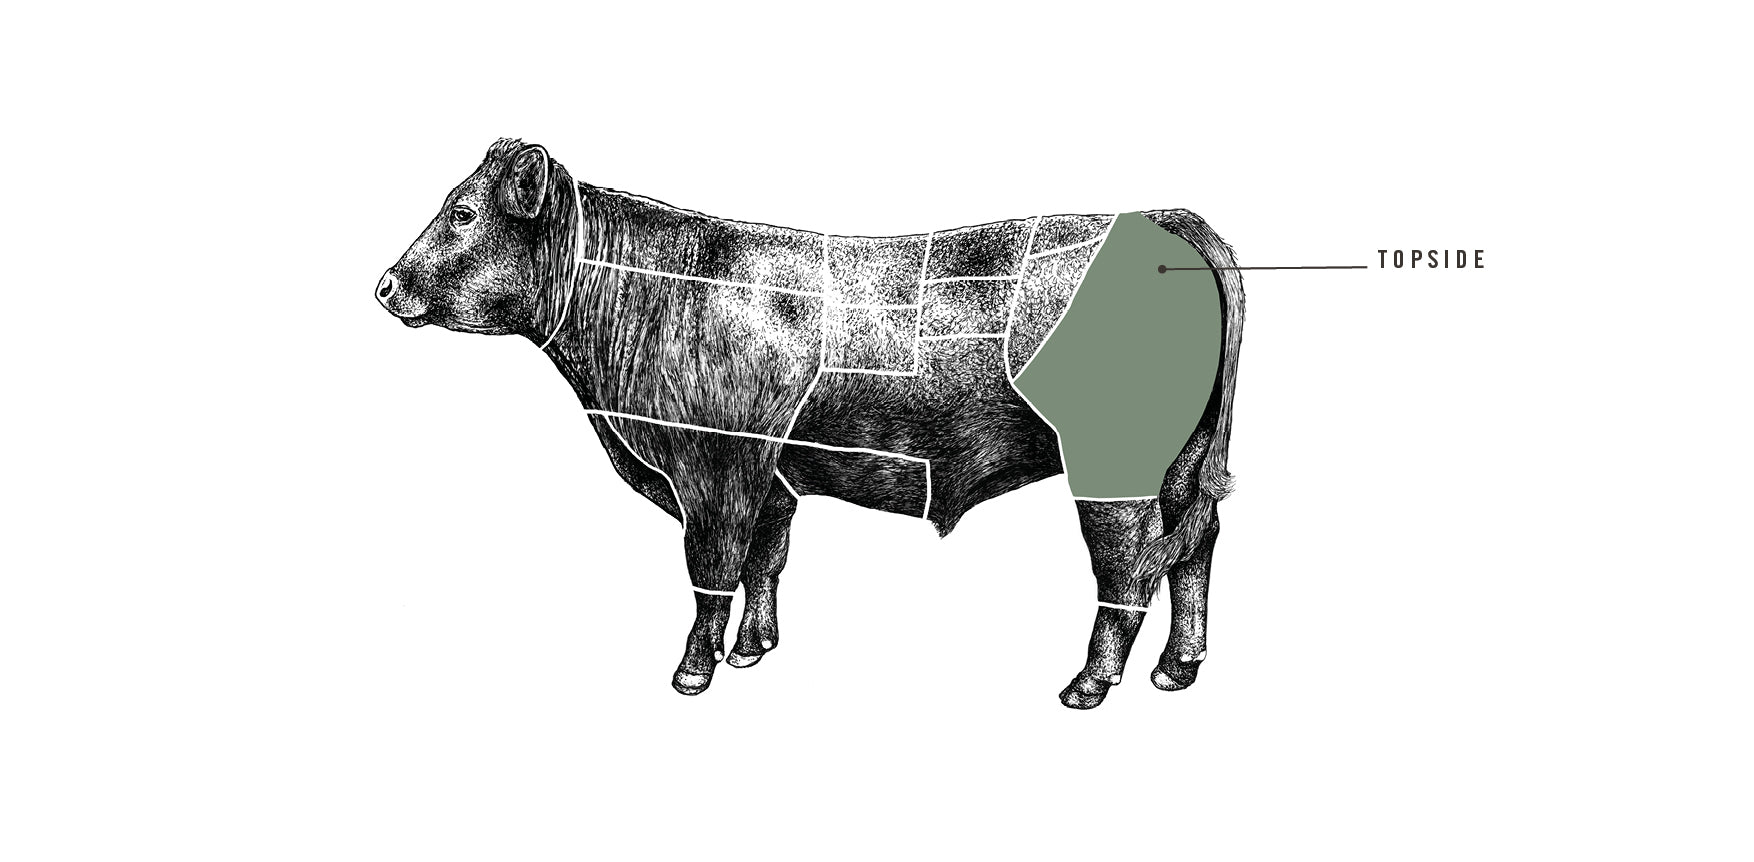 Grass Fed Beef Topside meat cuts diagram